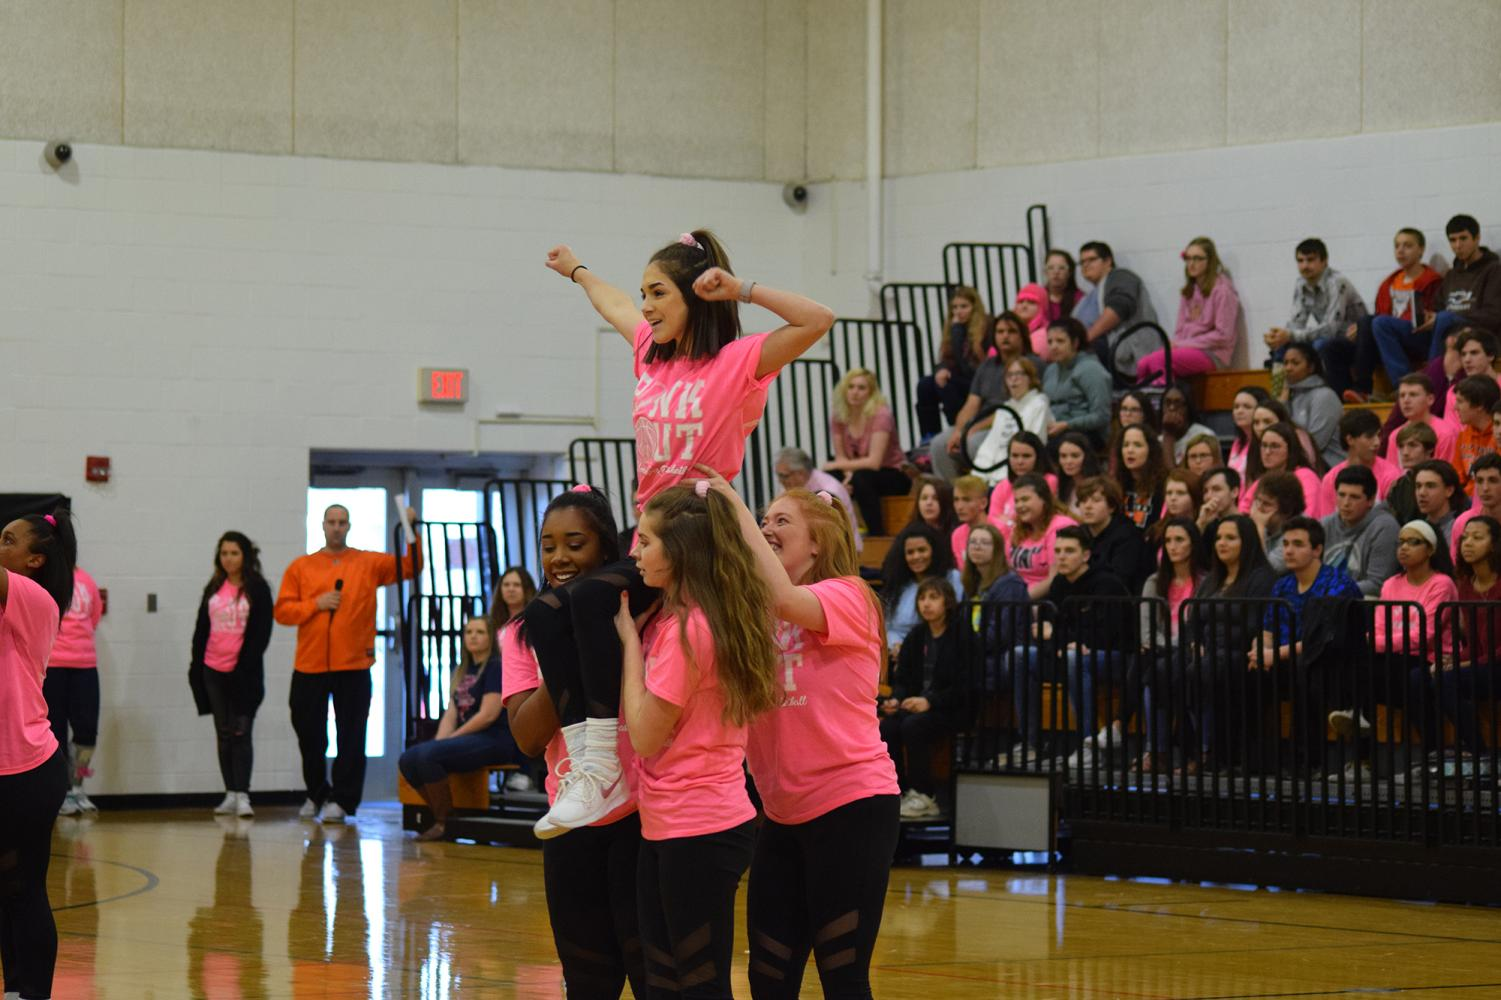 Makay+Russell+%289%29+gives+it+her+all+at+the+Pink+Out+pep+rally.+